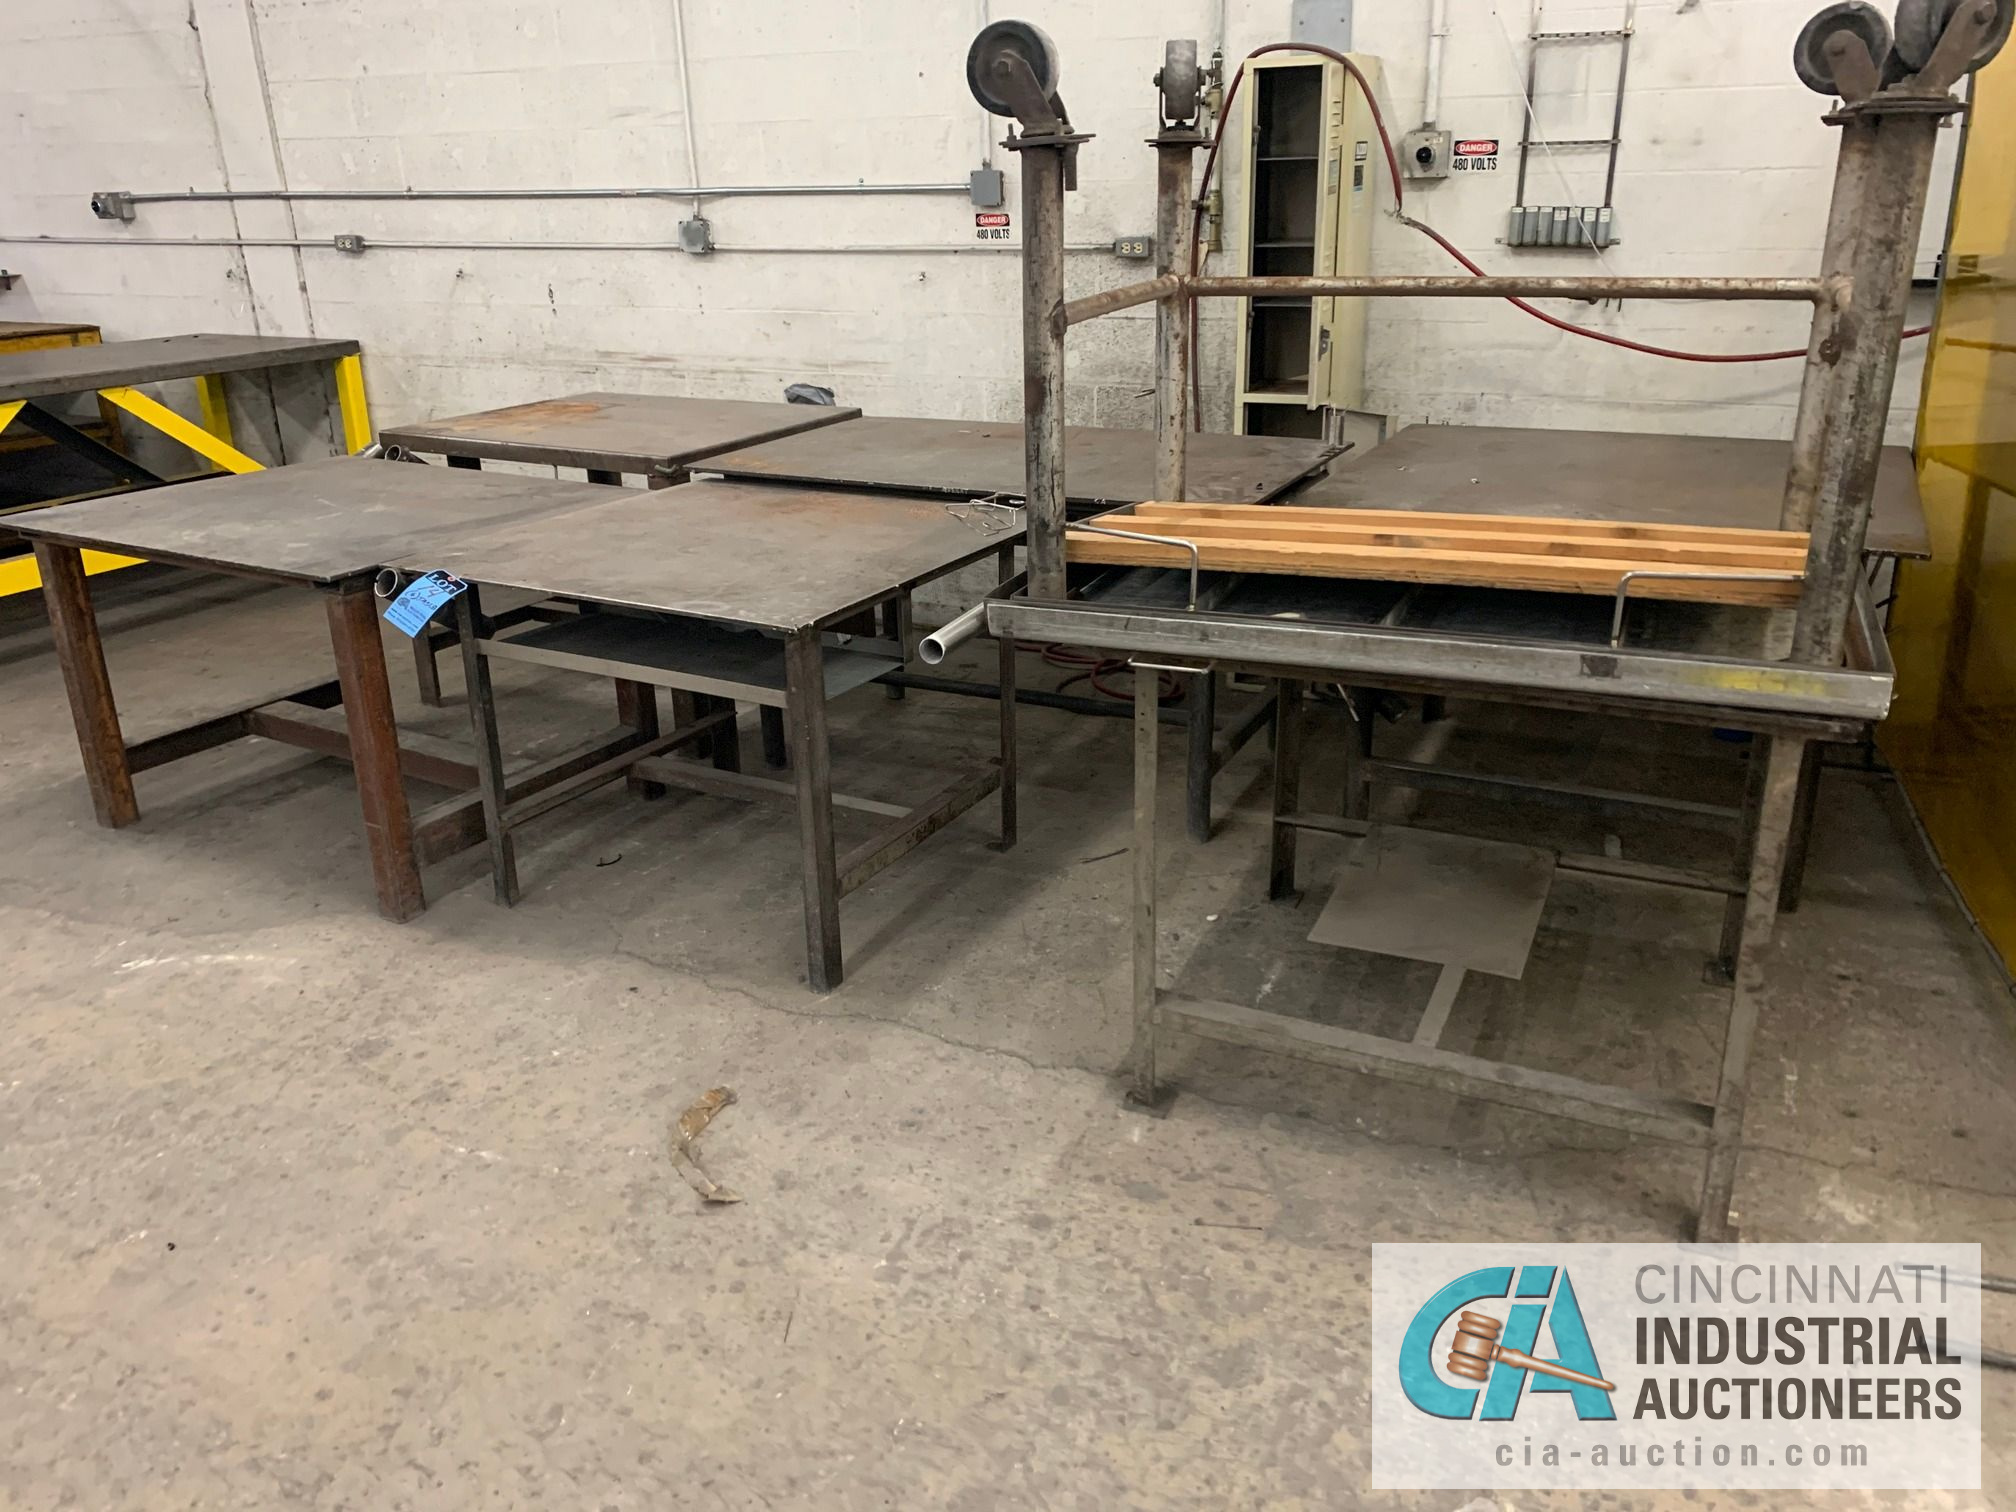 VARIOUS HEAVY WELD TABLES - Image 3 of 3